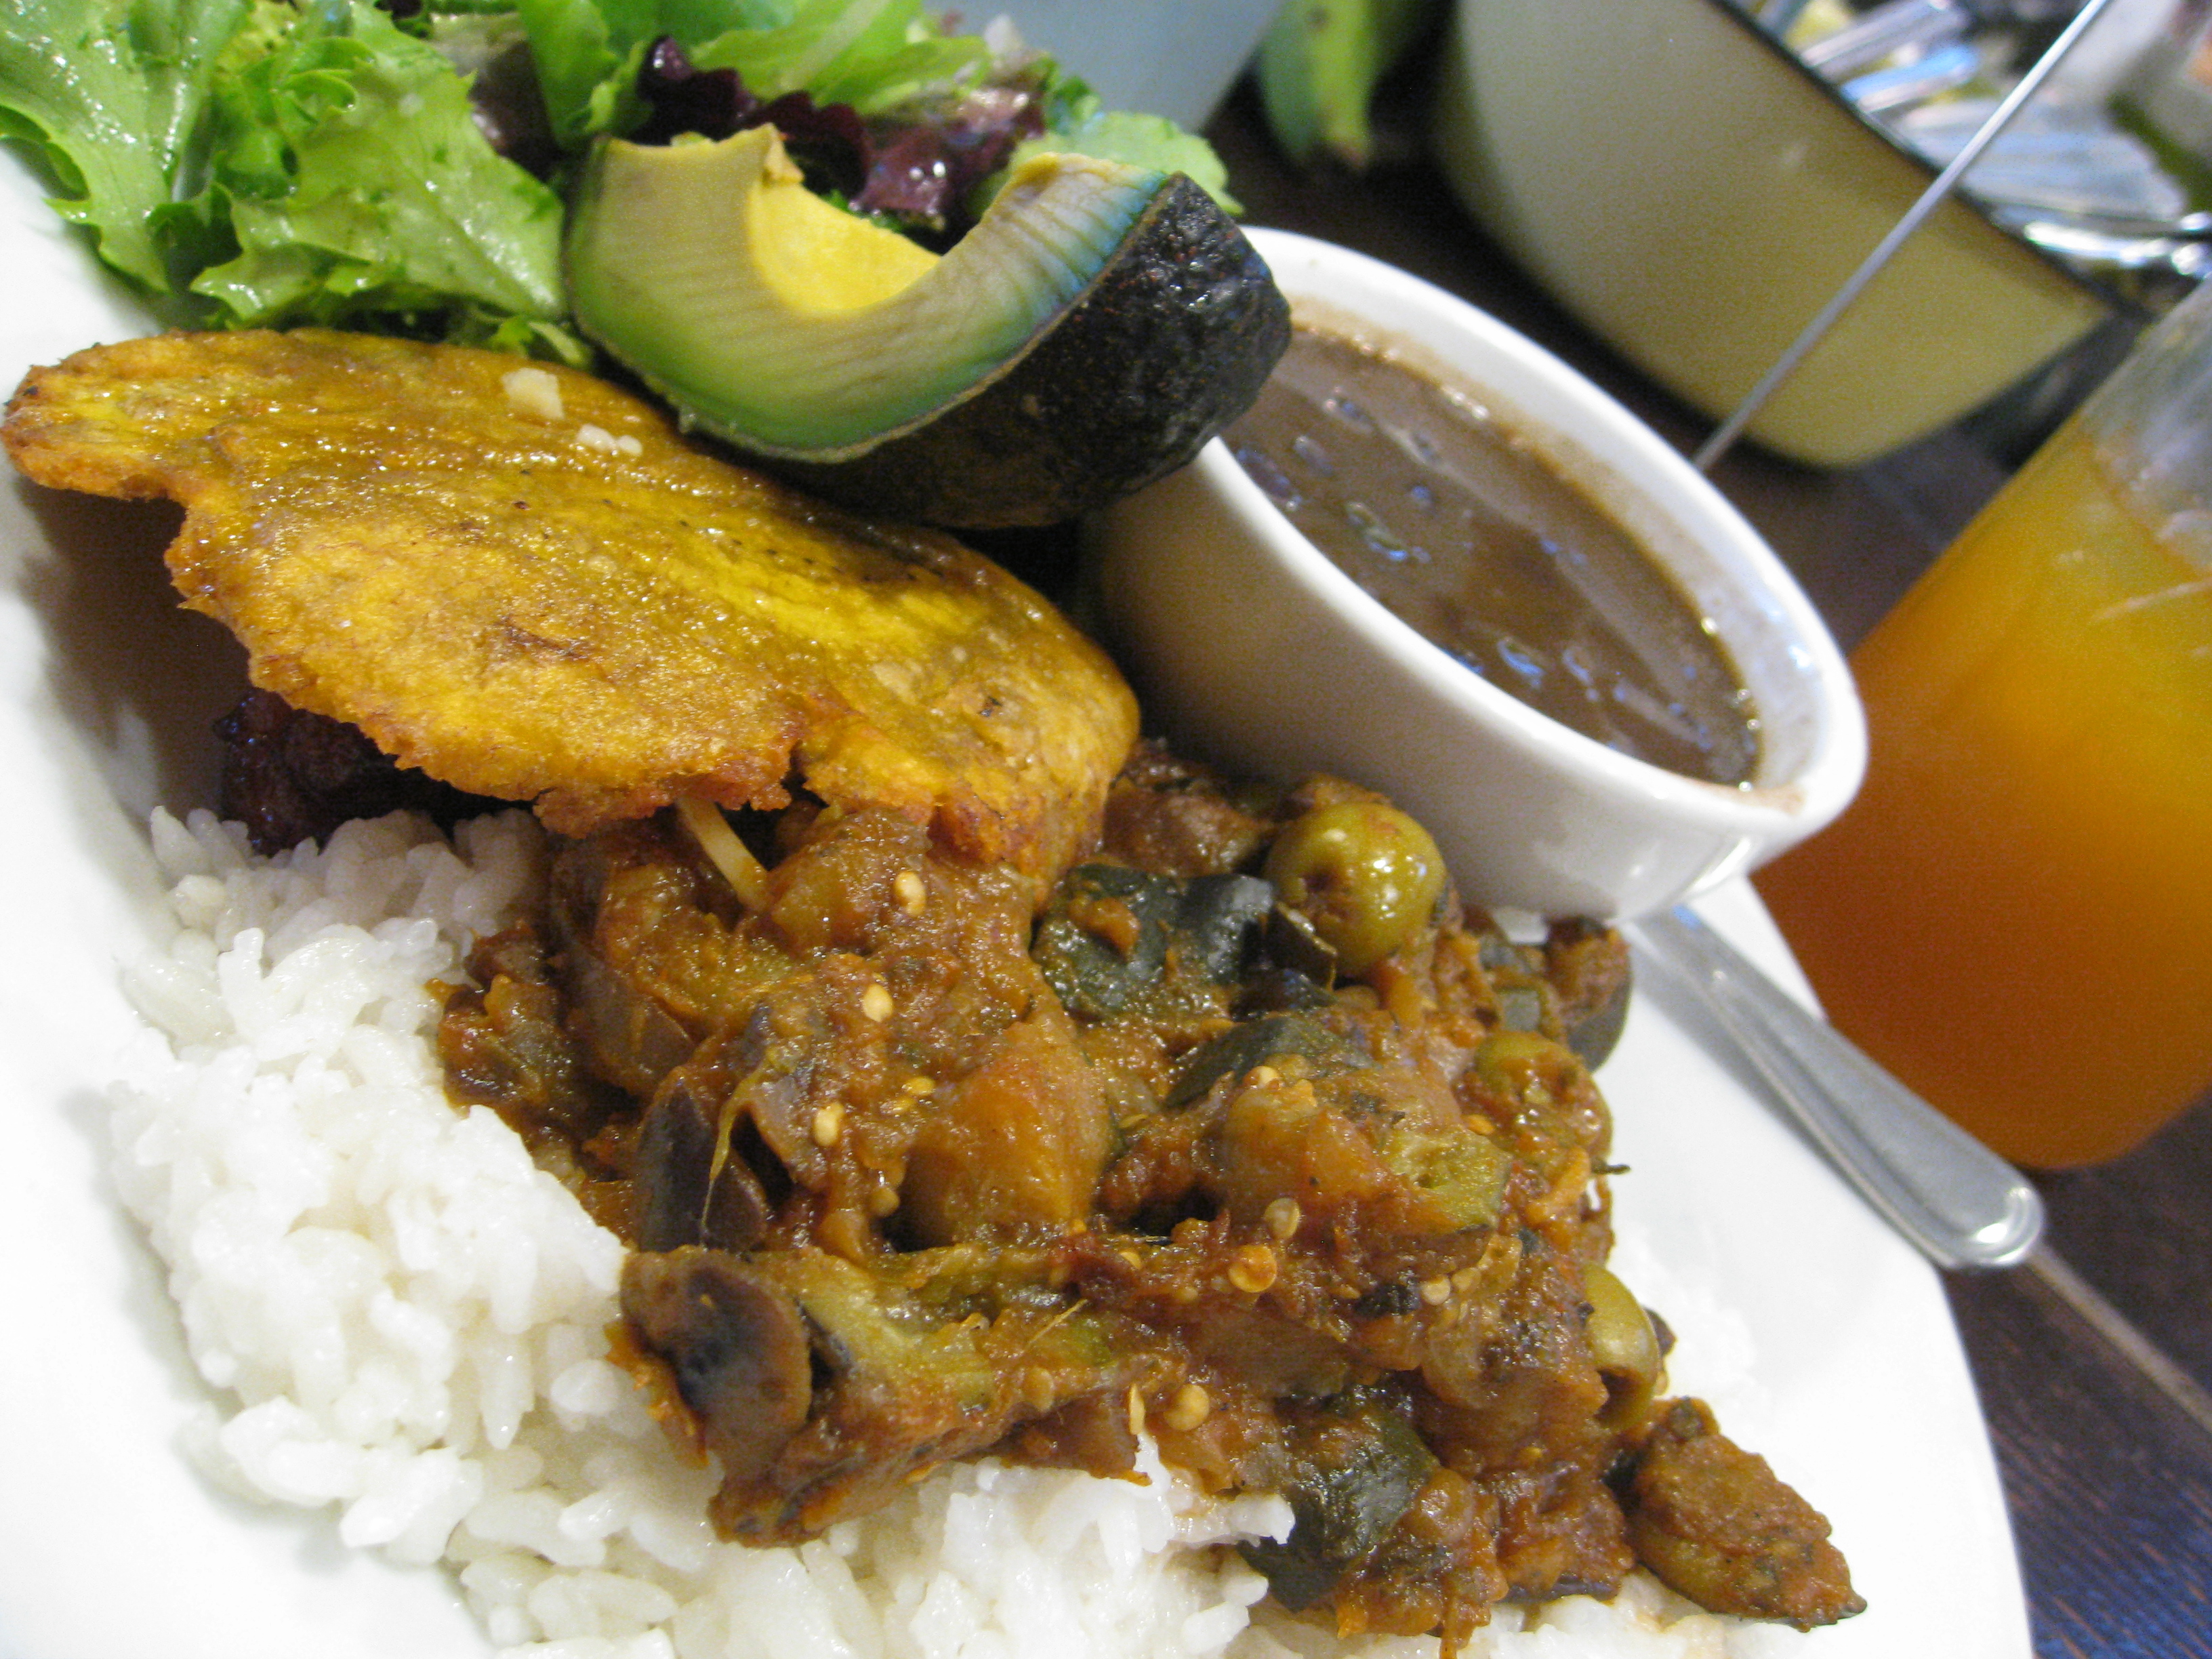 puerto rican cuisine Browse all puerto rican recipes: puerto rican appetizers | puerto rican beverages | puerto rican soups | puerto rican salads | puerto rican vegetarian | puerto rican meat dishes | puerto rican snacks | puerto rican desserts there are many vegetarian dishes in the cuisine of puerto rico the.